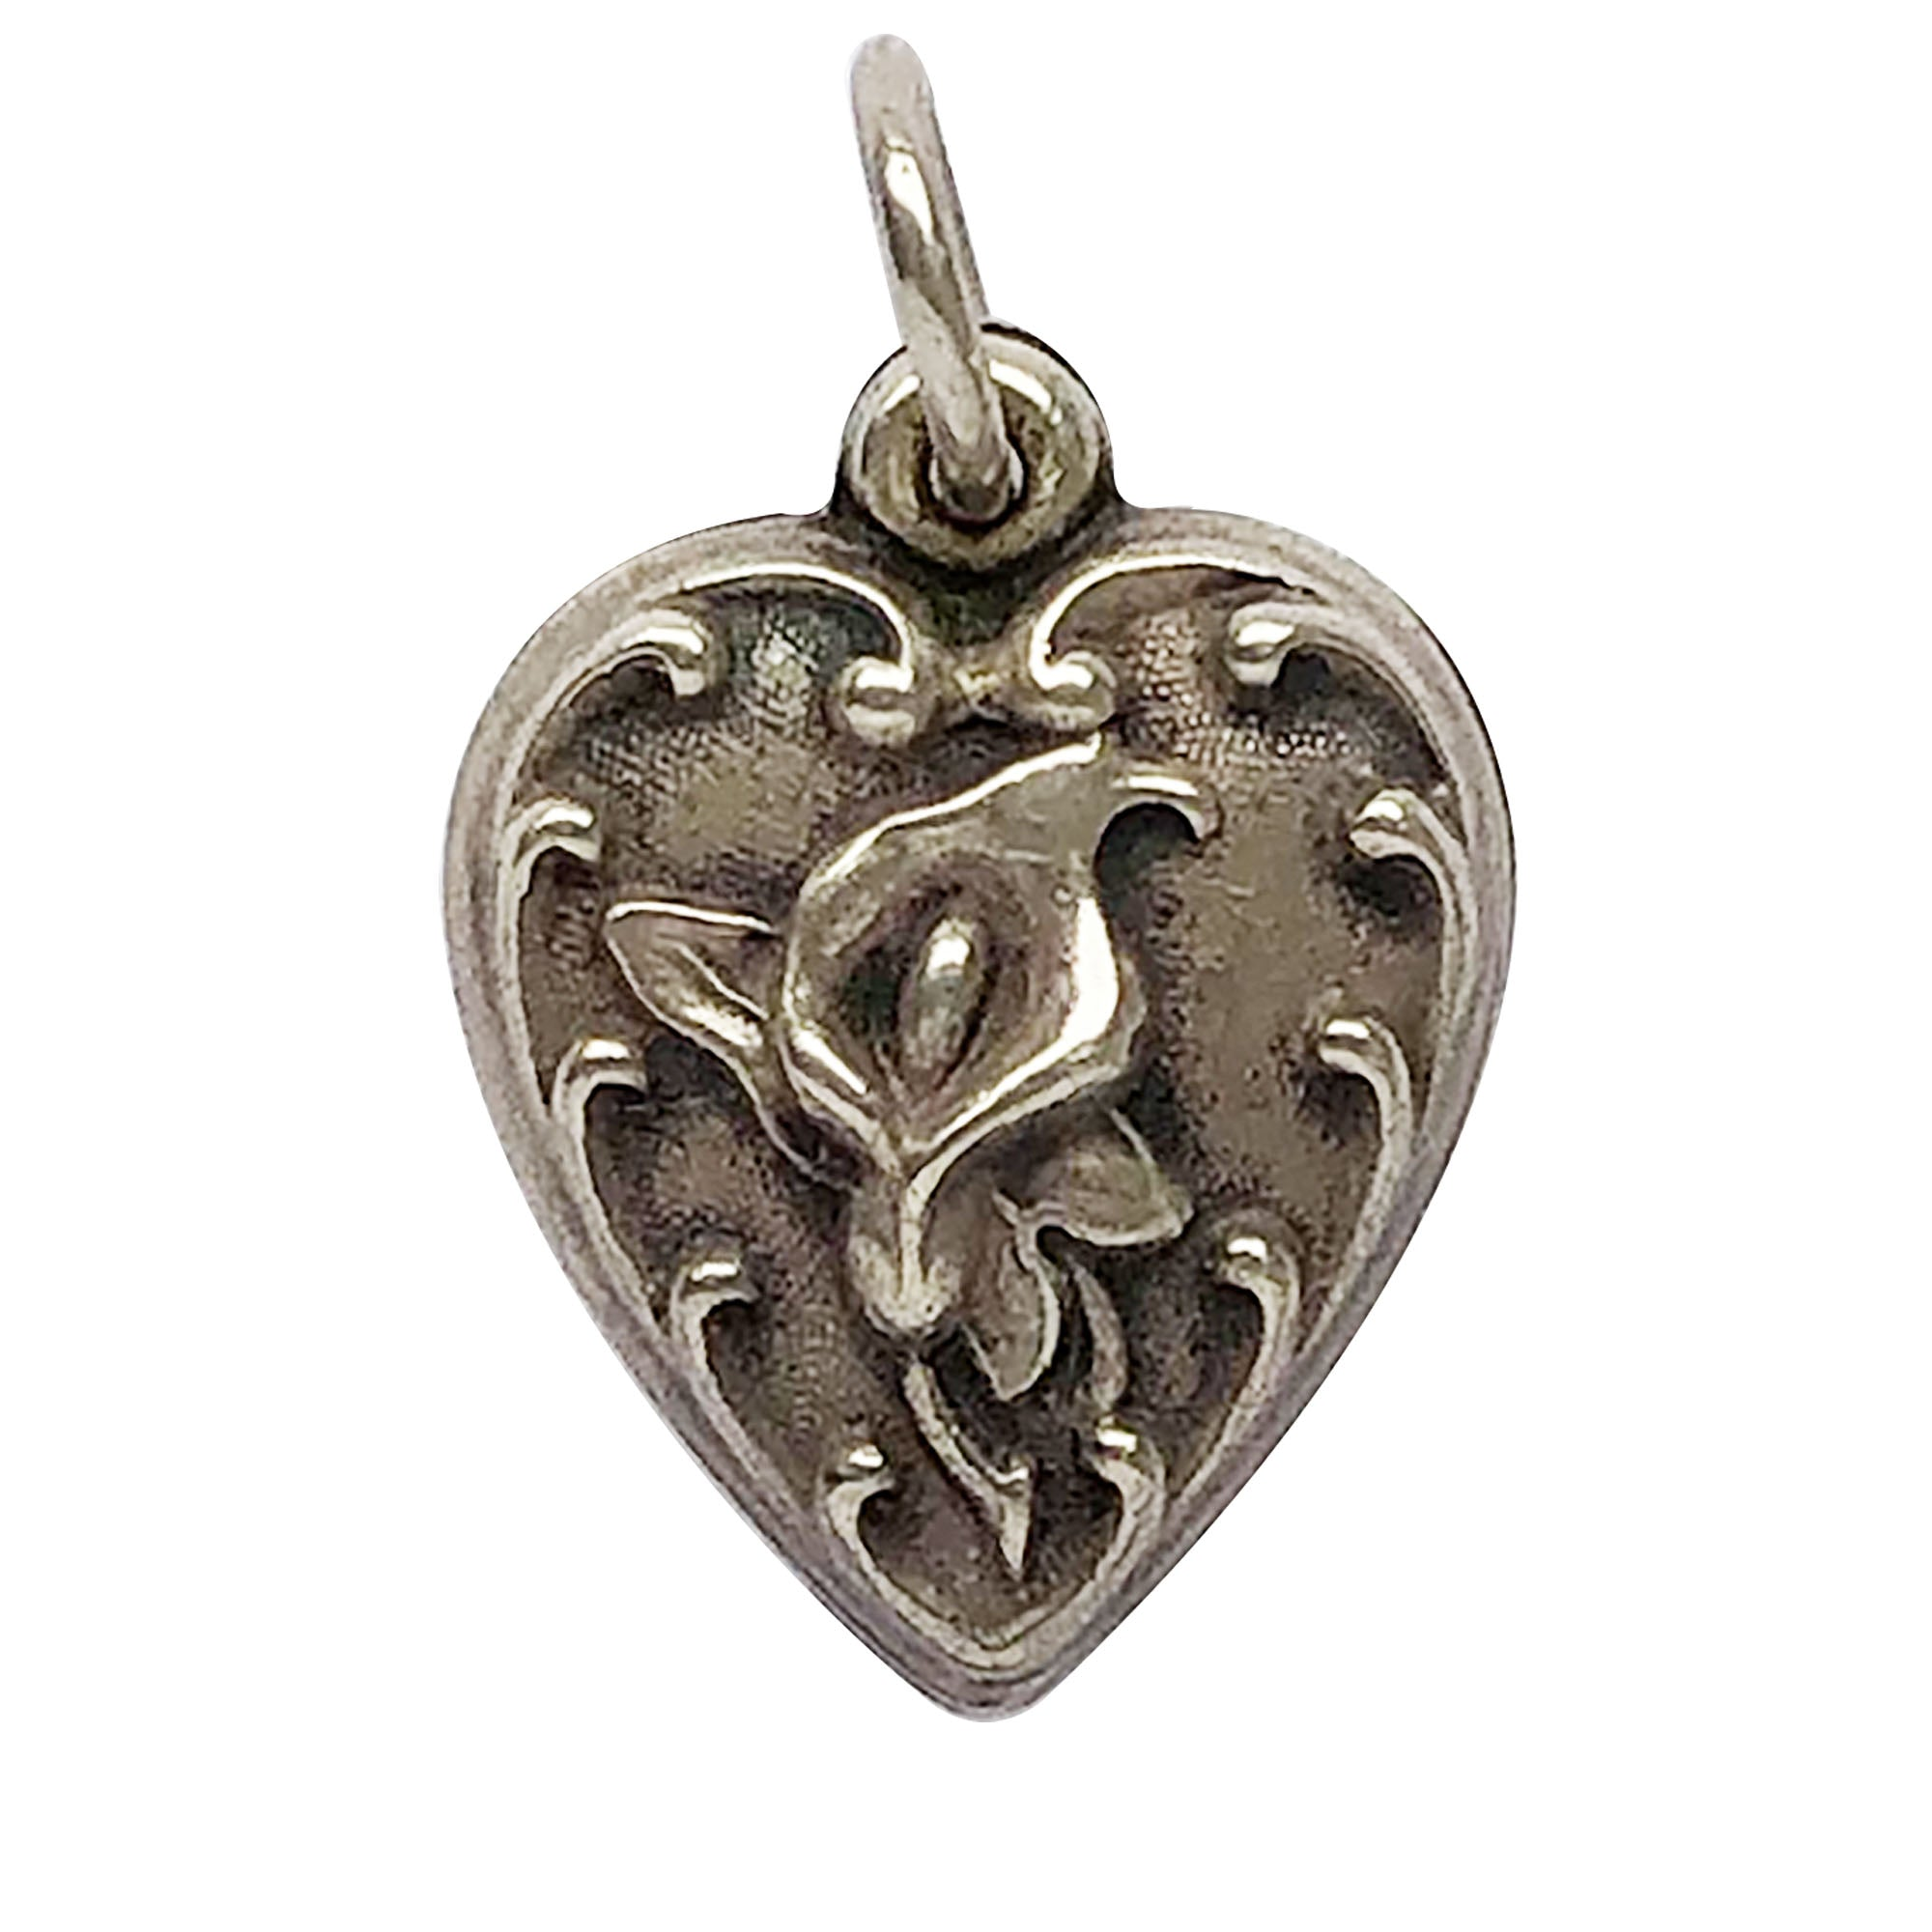 Puffy Black Heart with White Flowers 24mm Silver Traditional Charm or Pendant